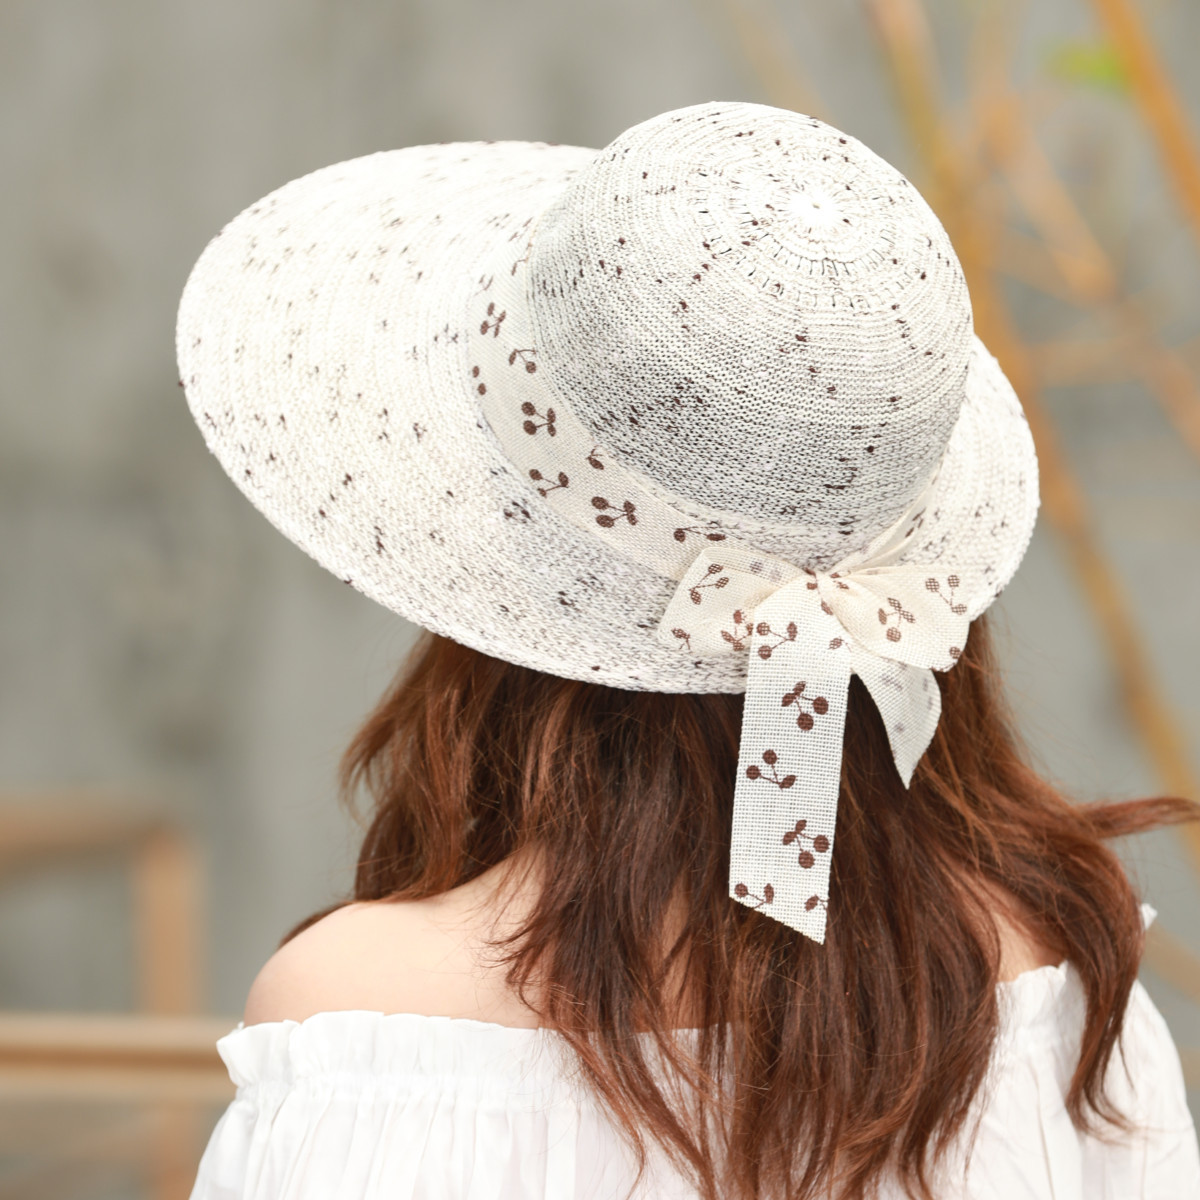 New female mixed color bow big visor spring and summer knitted outdoor sun protection sun hat can be slightly folded in Women 39 s Sun Hats from Apparel Accessories